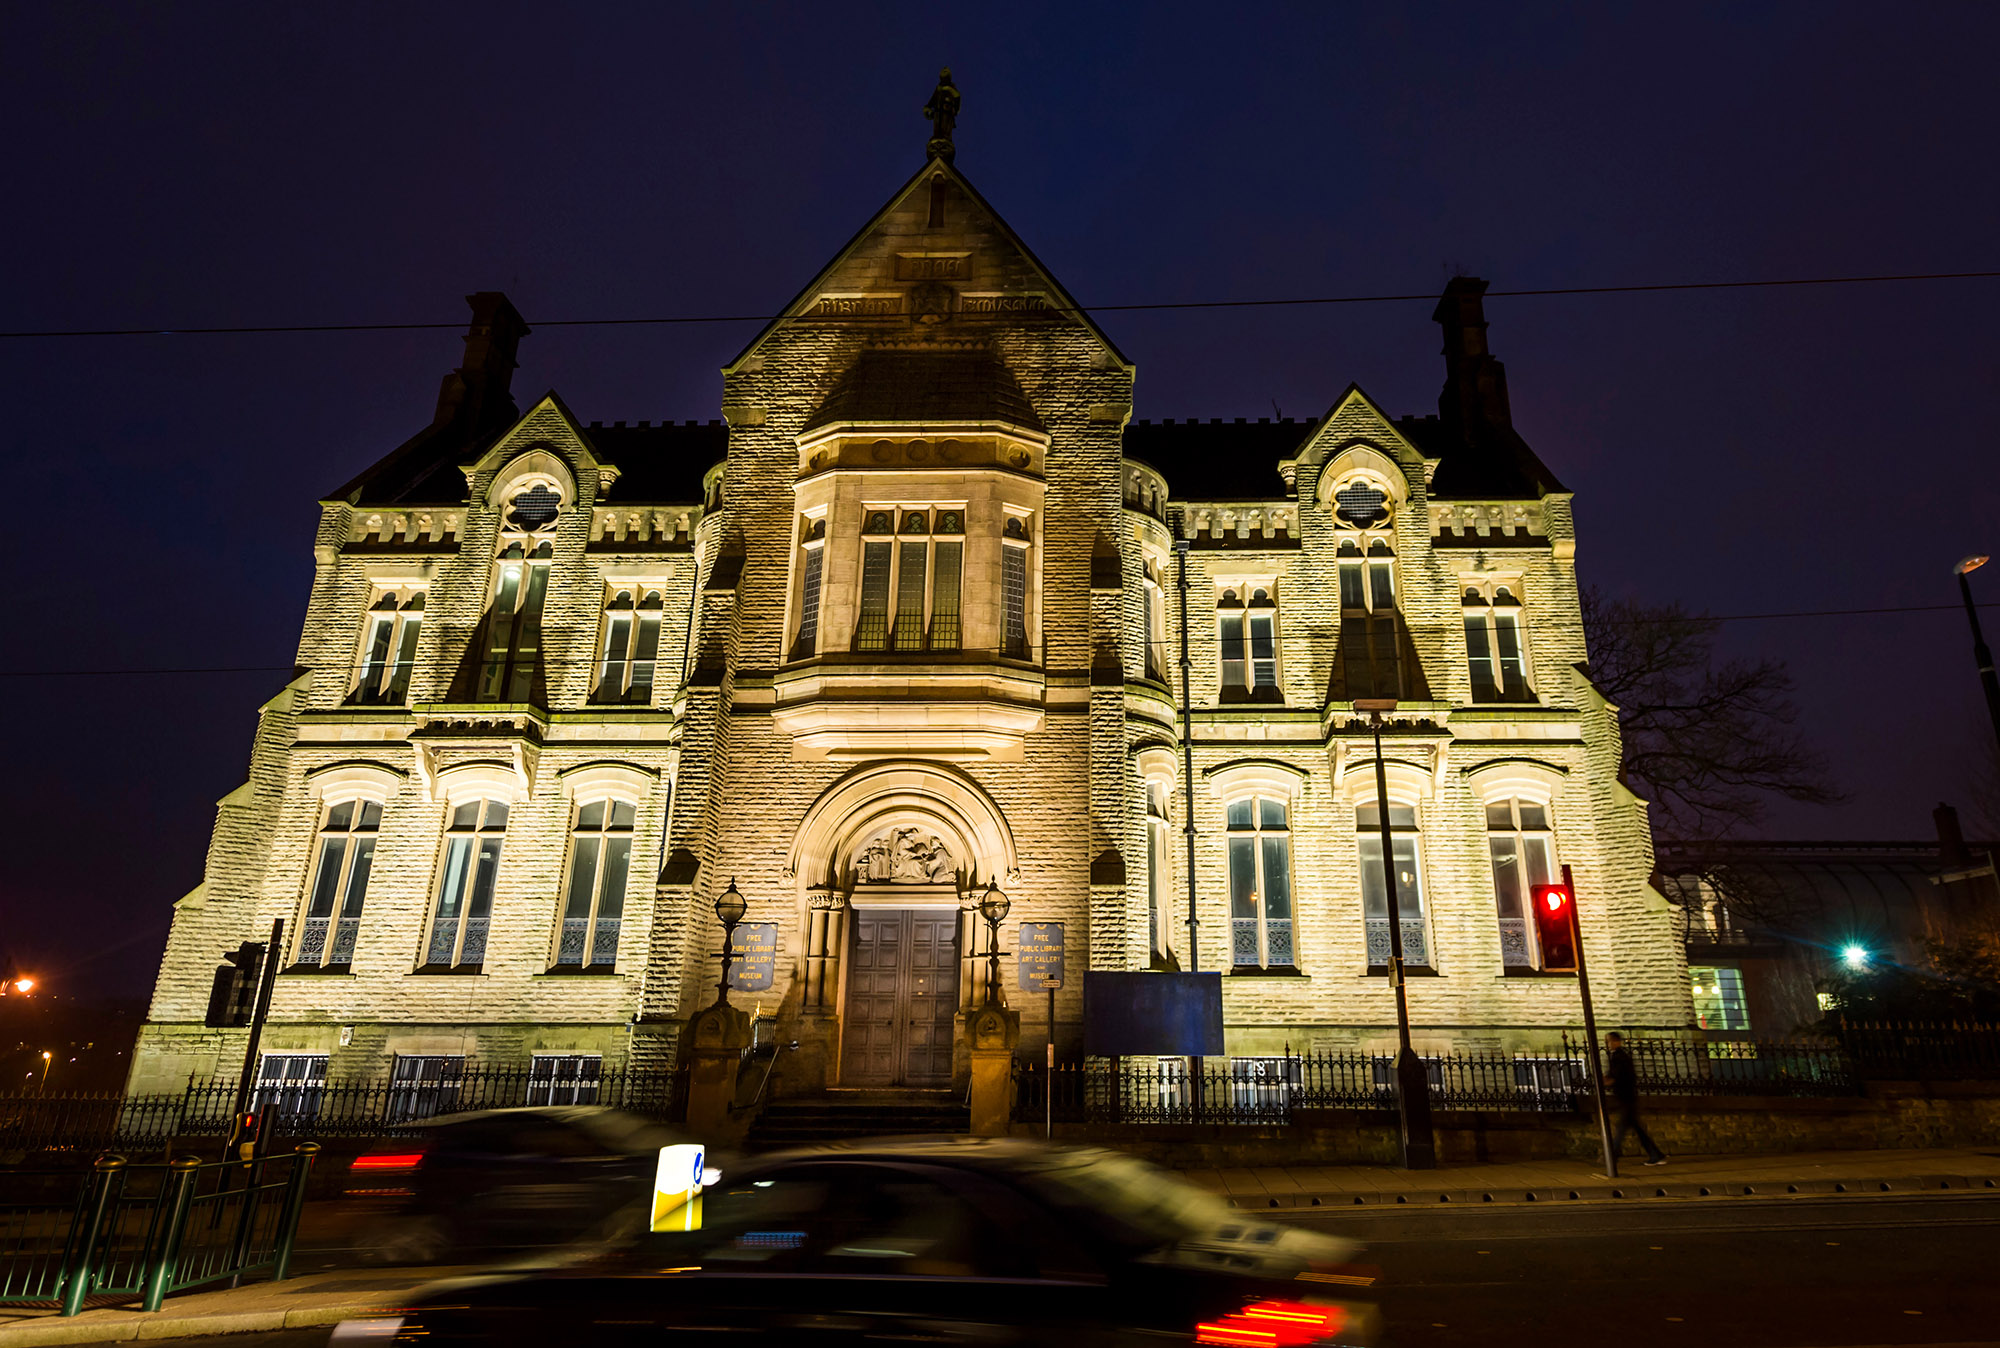 The former library building as it looks in 2016 – illuminated at night